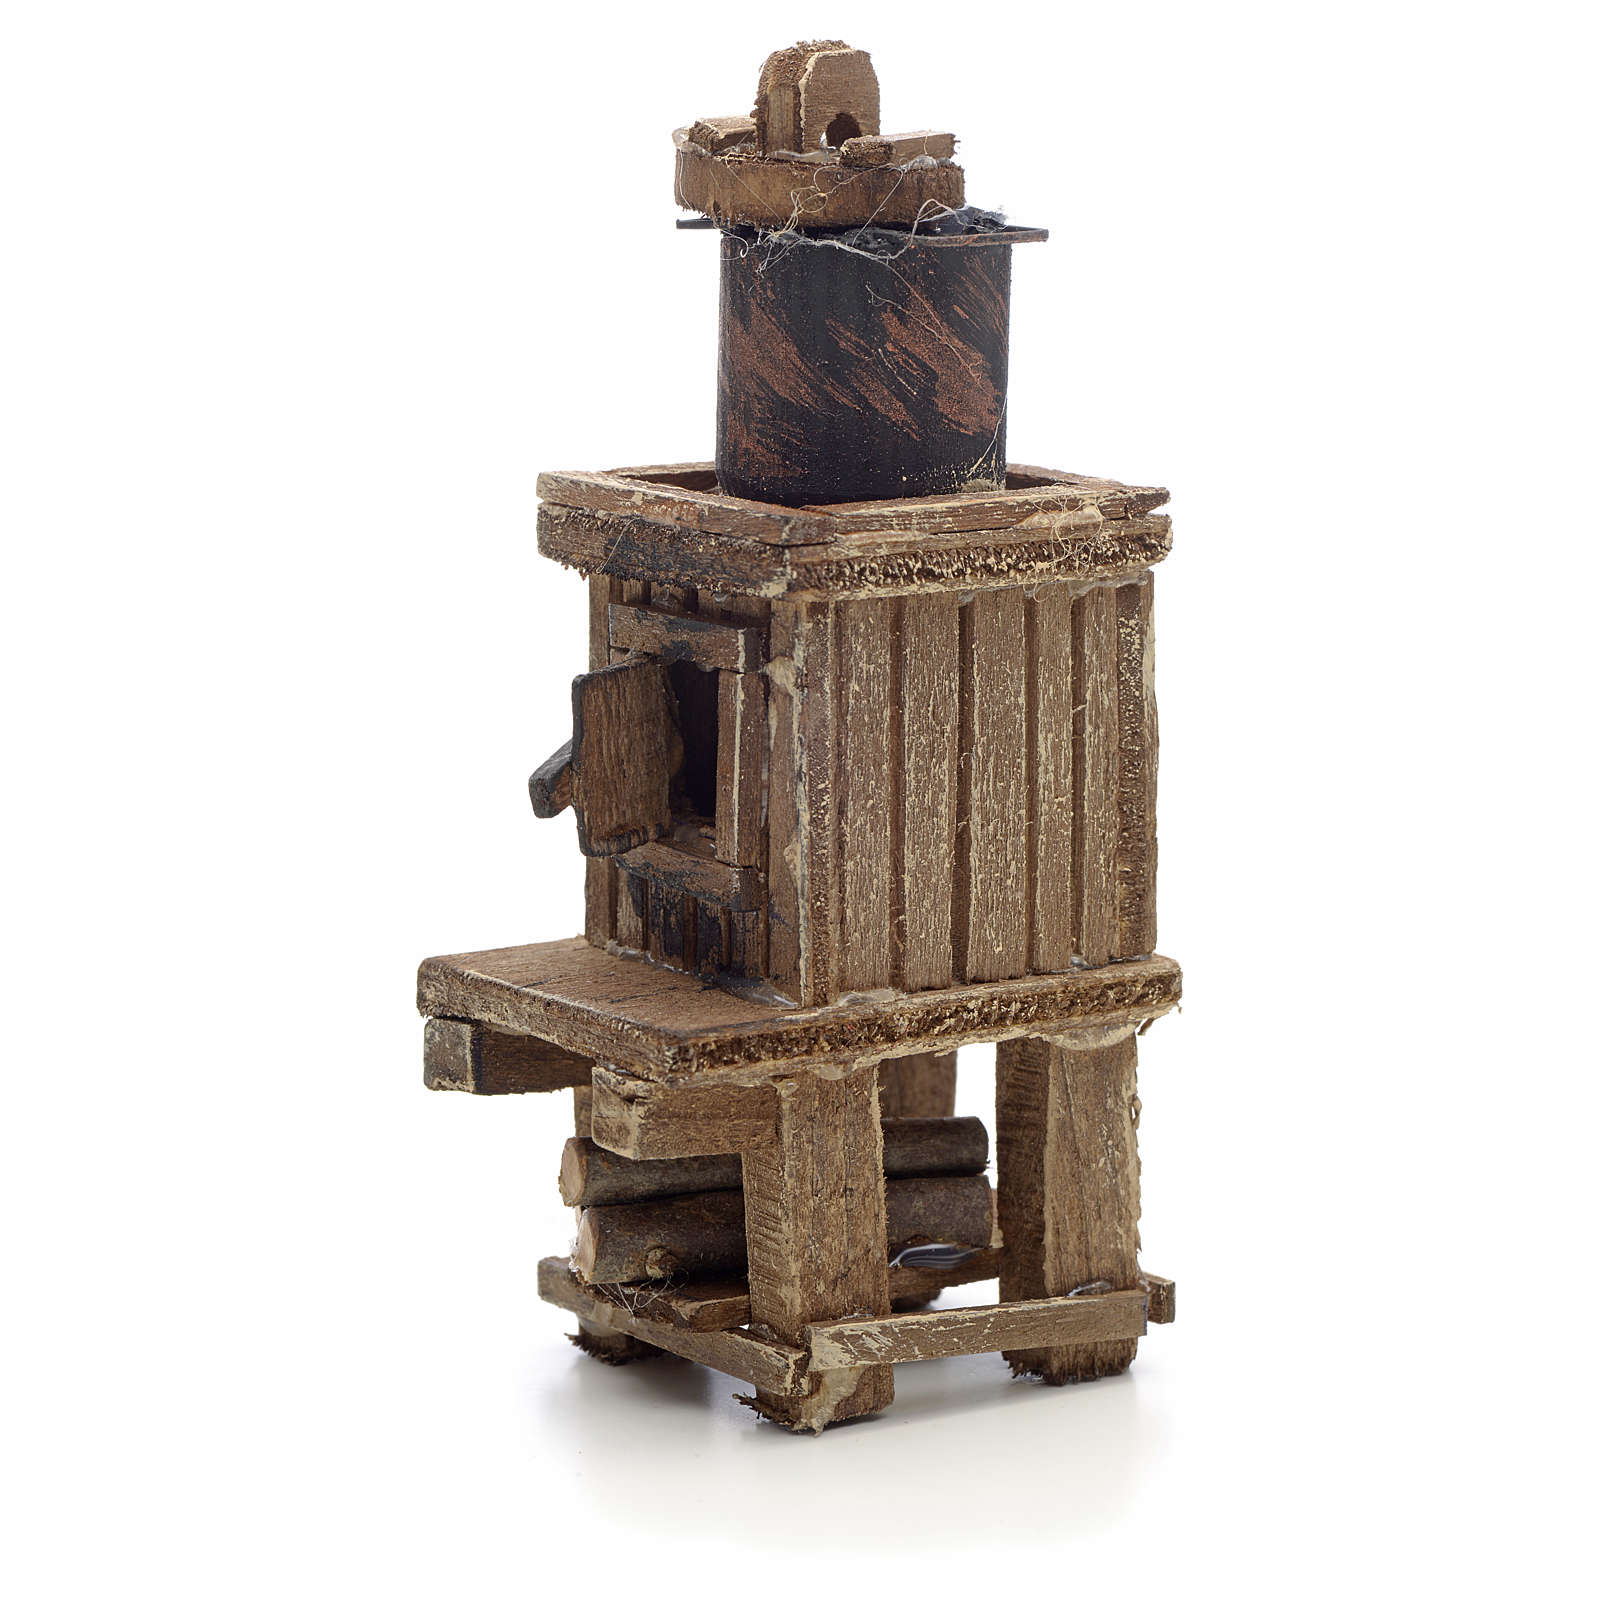 Neapolitan Nativity scene accessory, wood-burning oven with pot 4